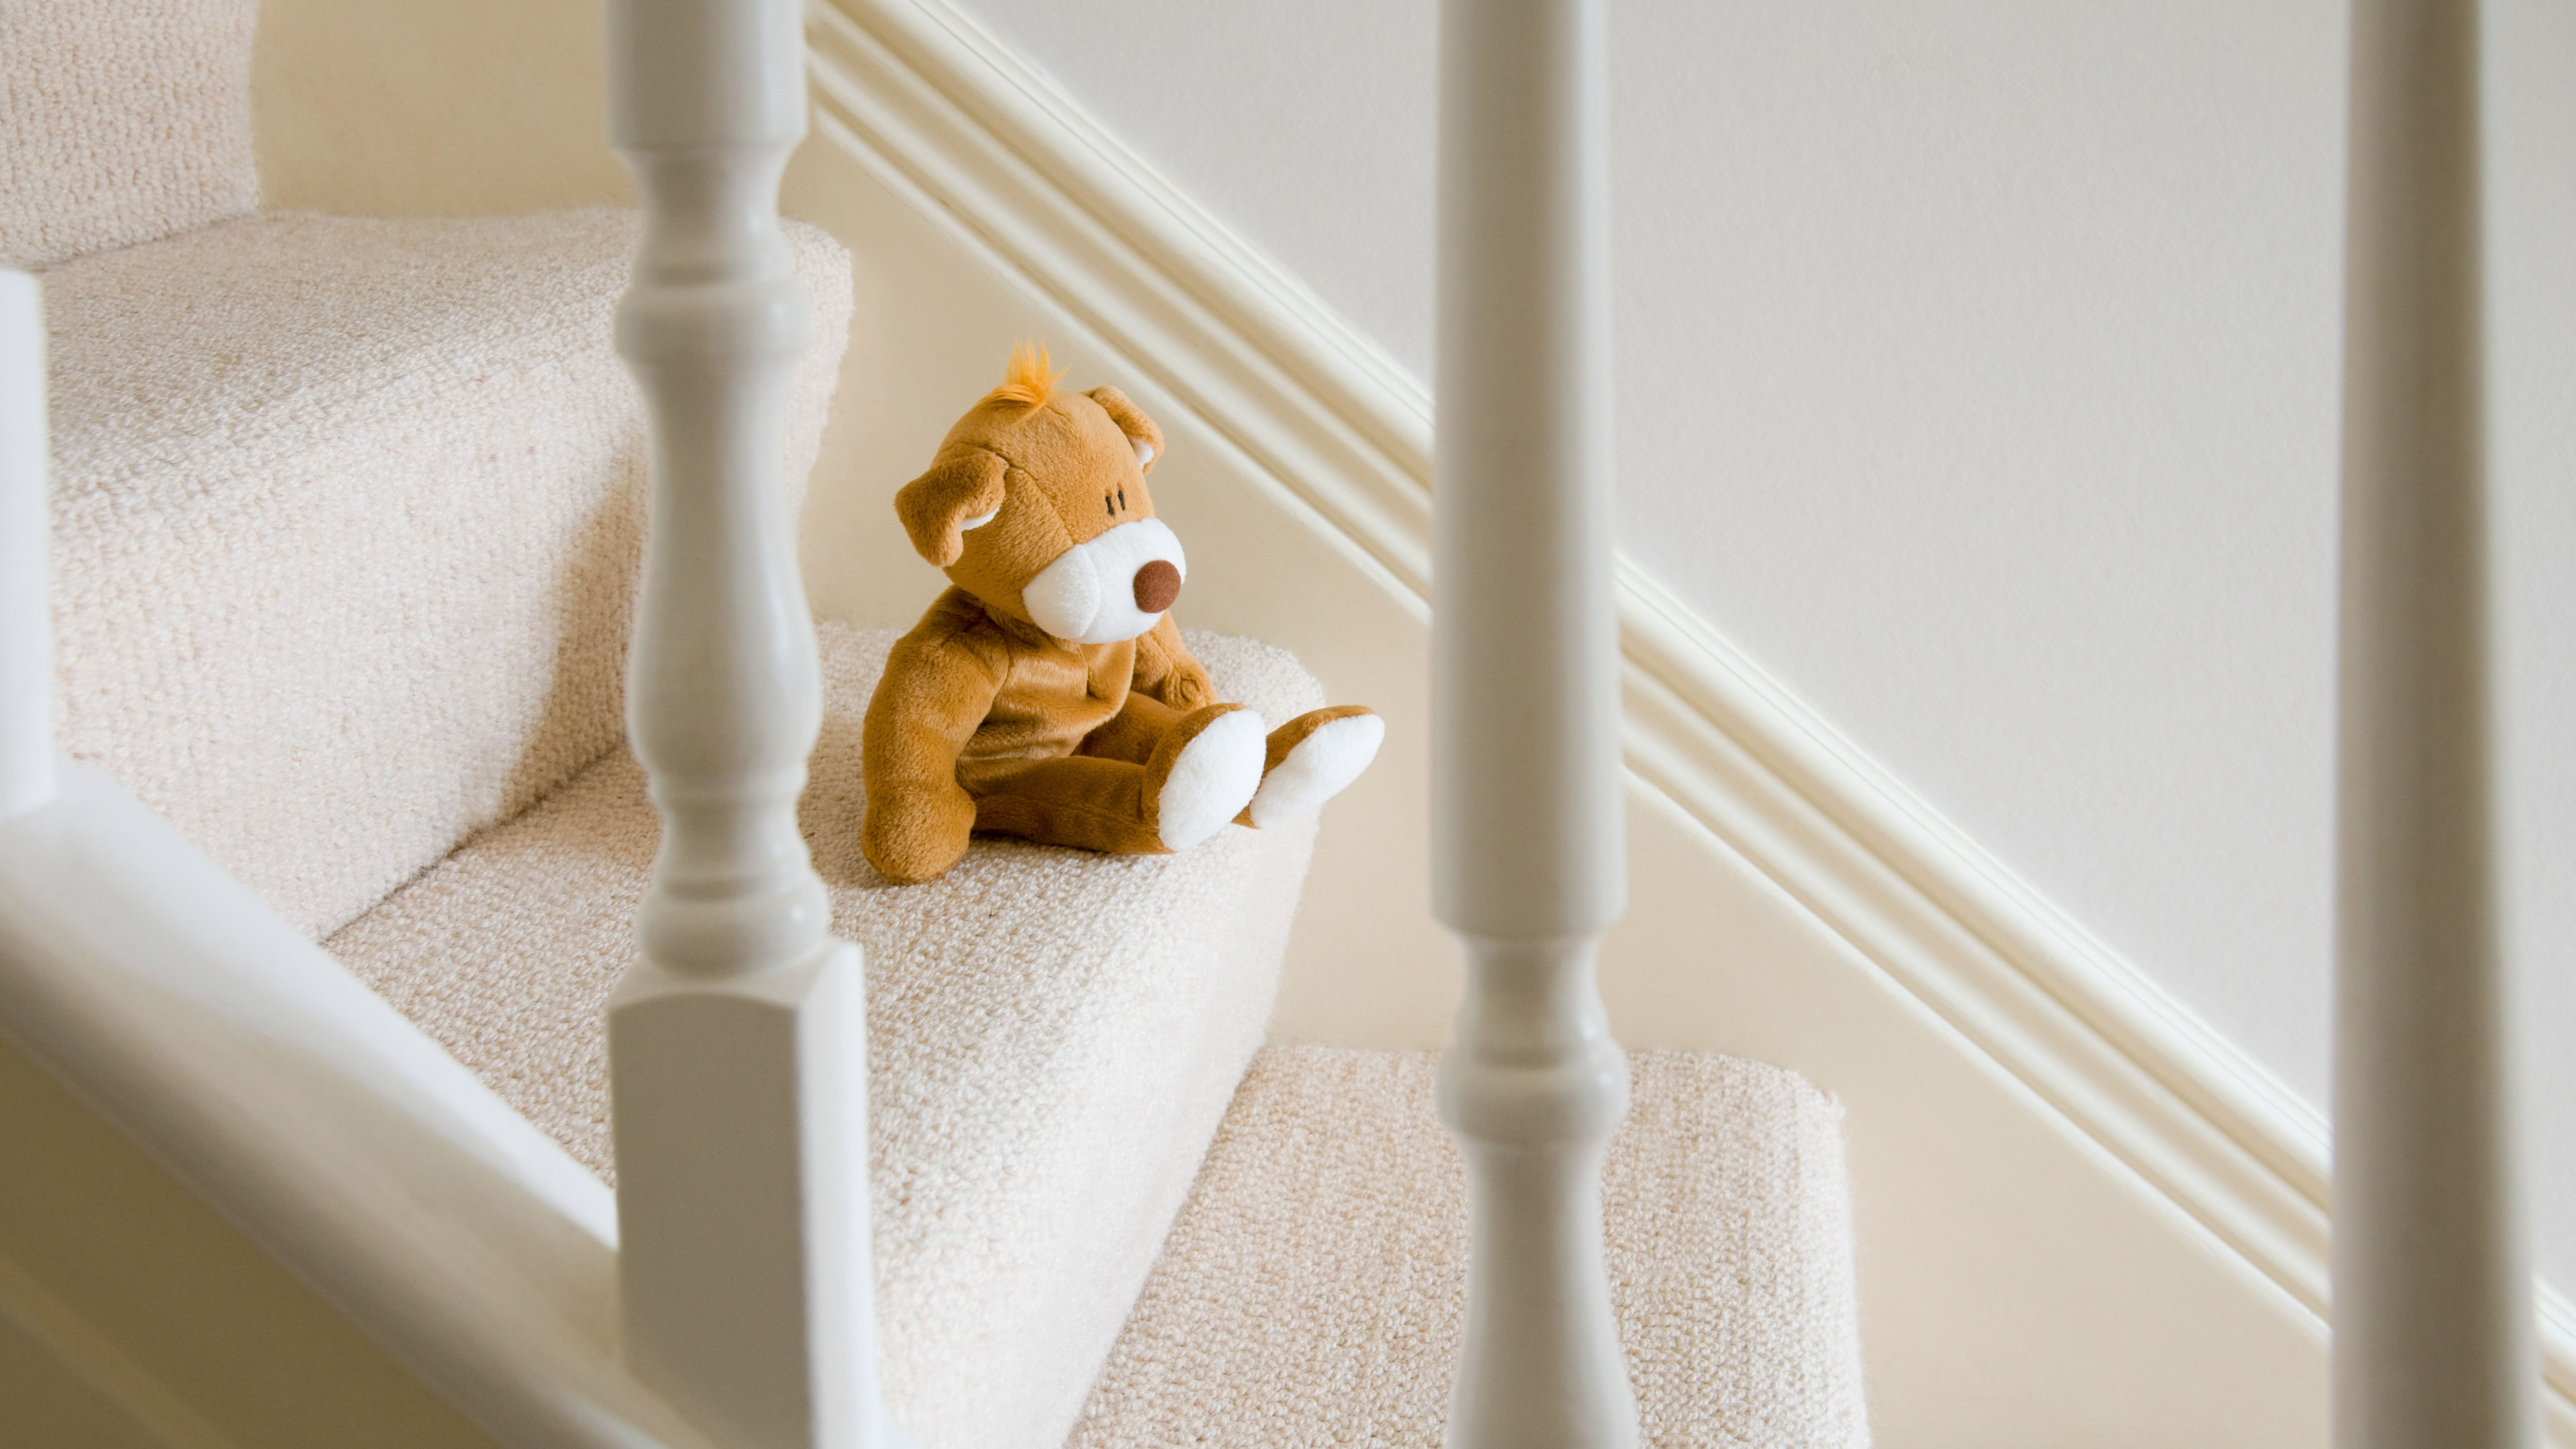 How To Choose The Best Carpet For Stairs | Low Pile Carpet For Stairs | Wool | Carpet Wrapped | Hallway | Bedroom | High End